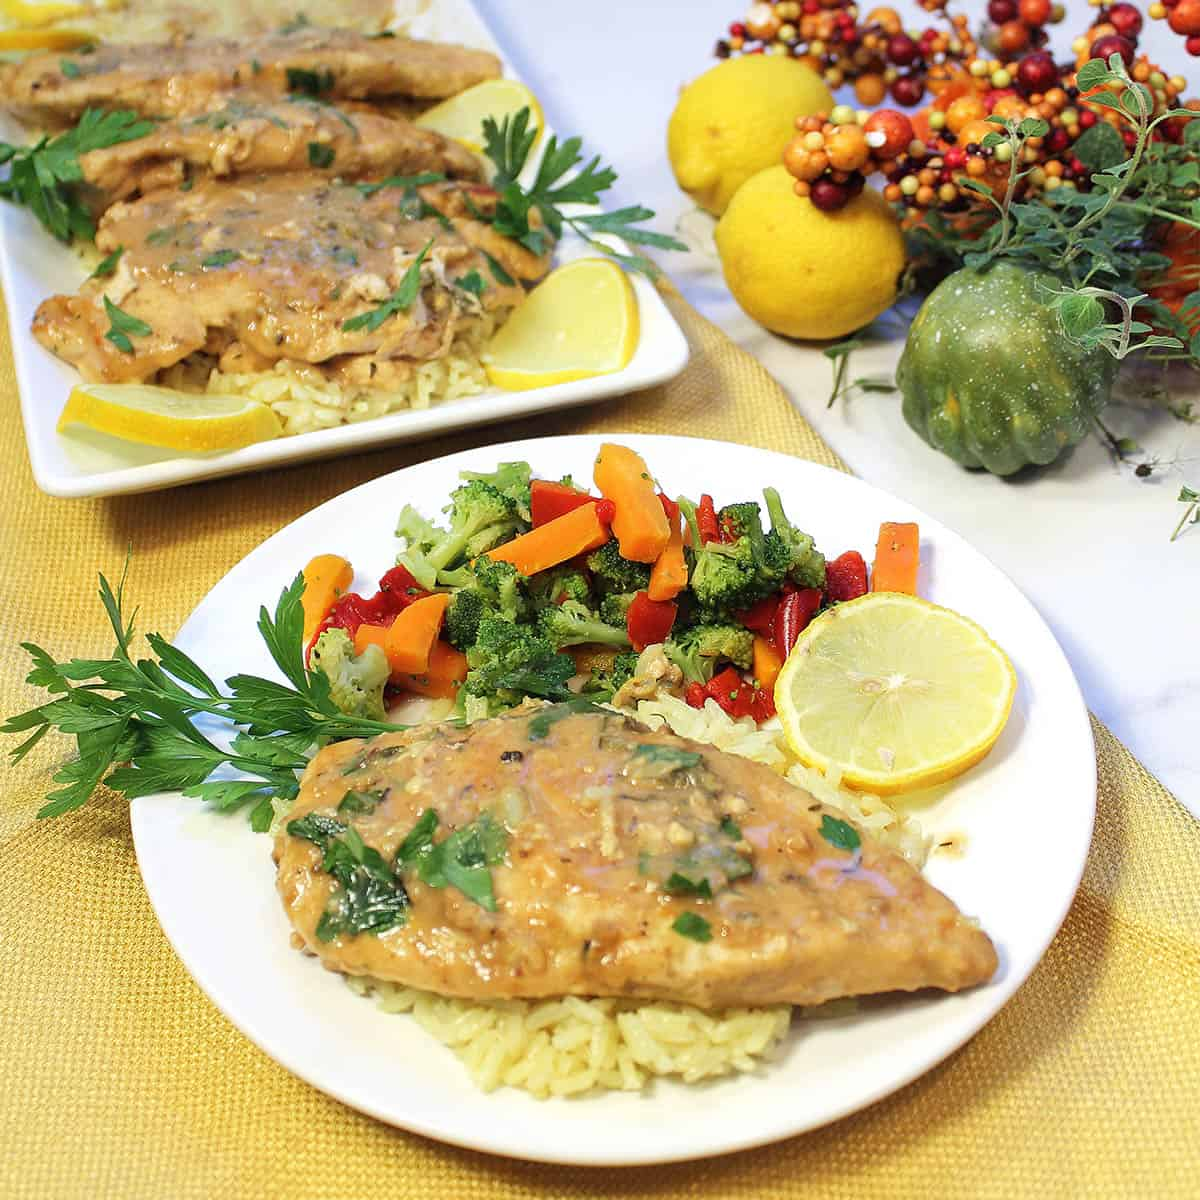 Finished chicken dinner on white plate with serving of vegetables.